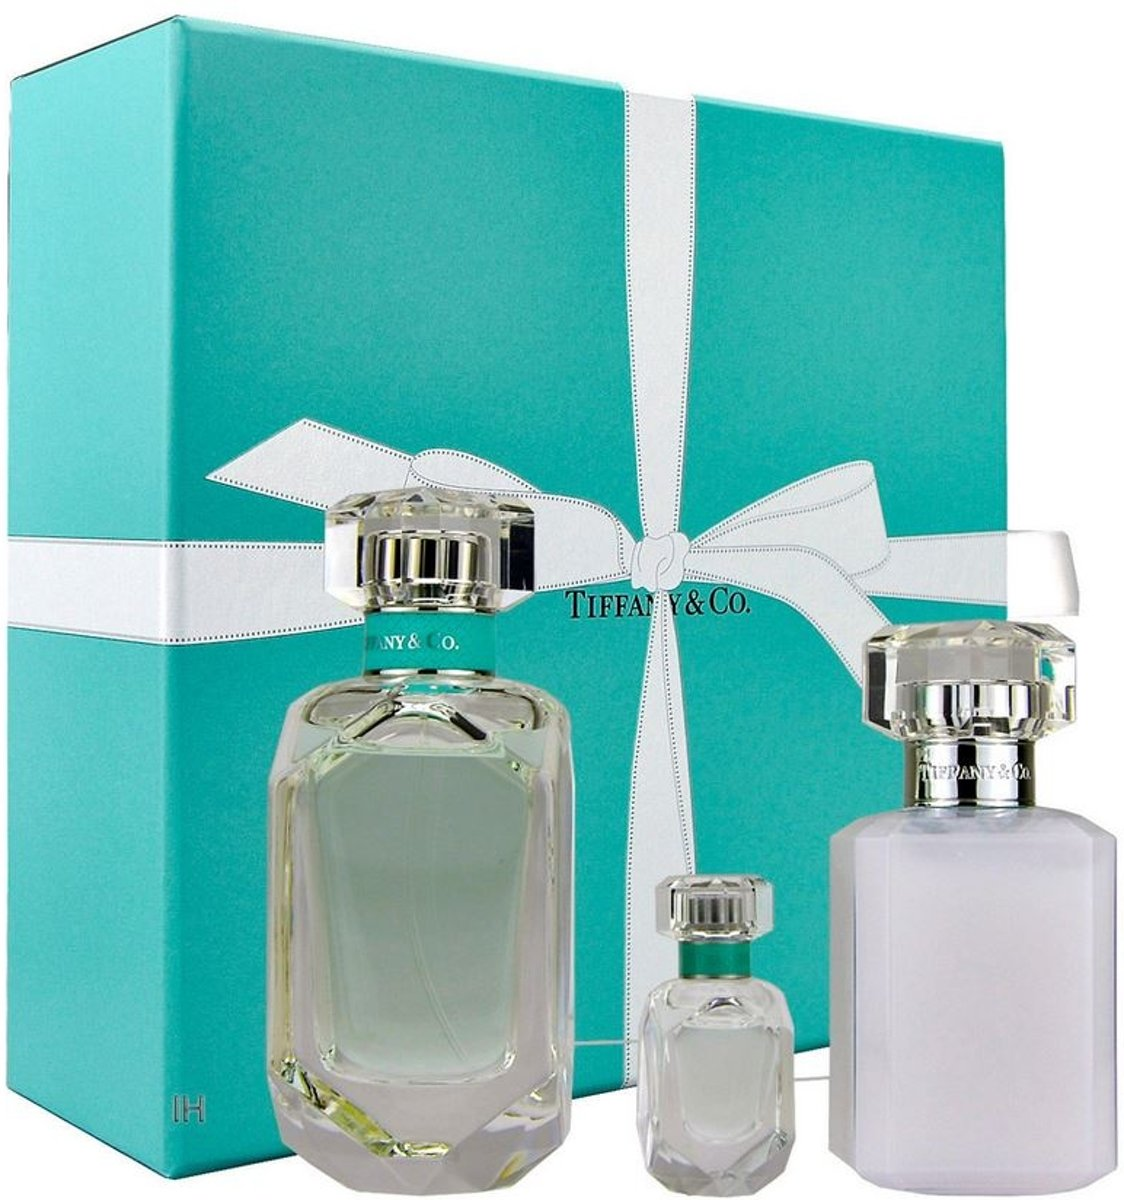 Tiffany & Co Tiffany & Co - Eau de parfum - Tiffany 75ml eau de parfum + 5ml eau de parfum + 100ml bodylotion - Gifts ml